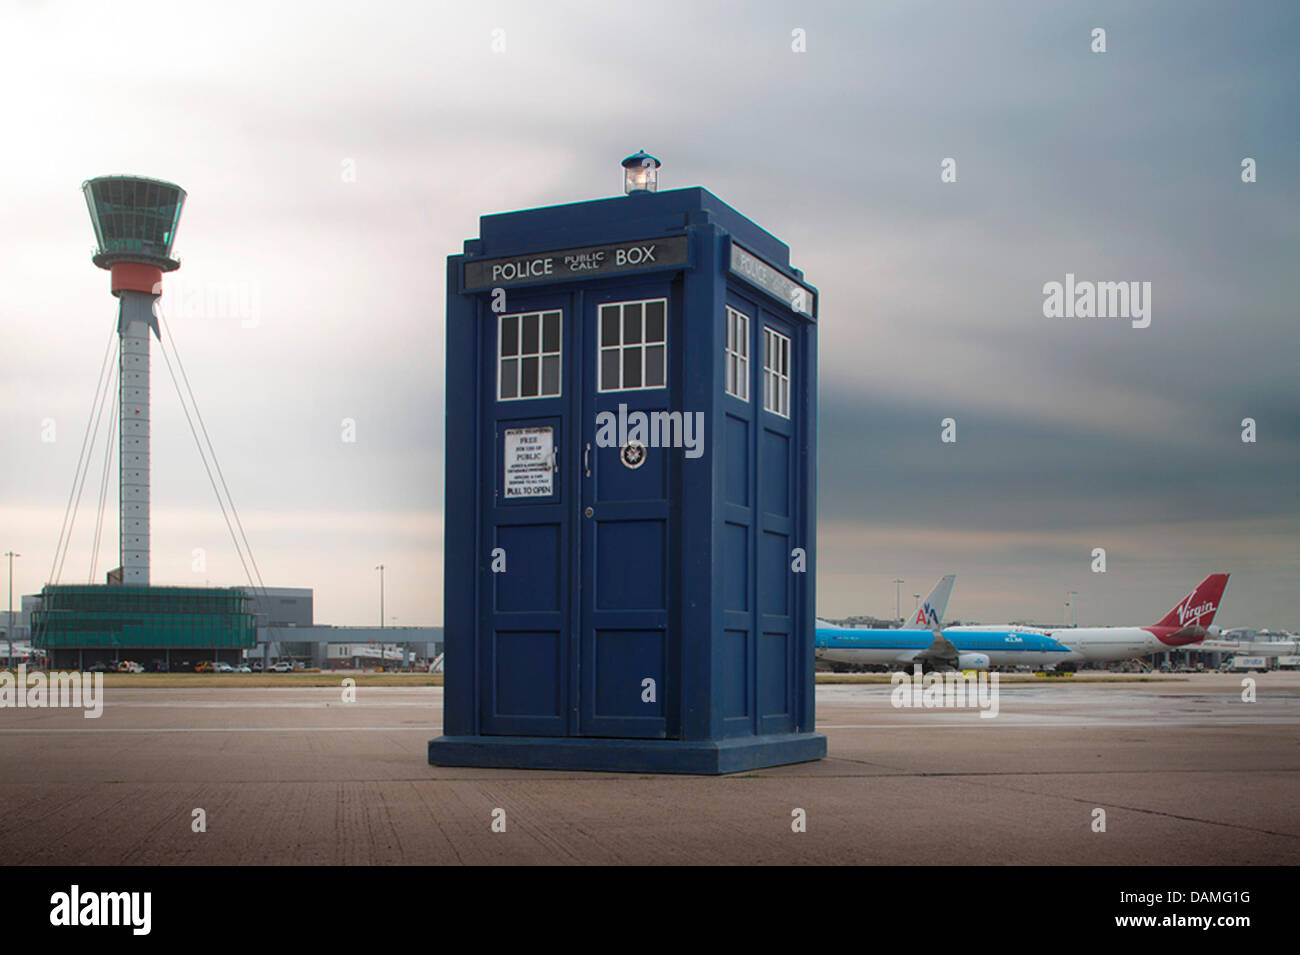 London, UK. 16th July 2013. HANDOUT IMAGE: Pictures courtesy of Heathrow airport. The Tardis photobooth from the - Stock Image